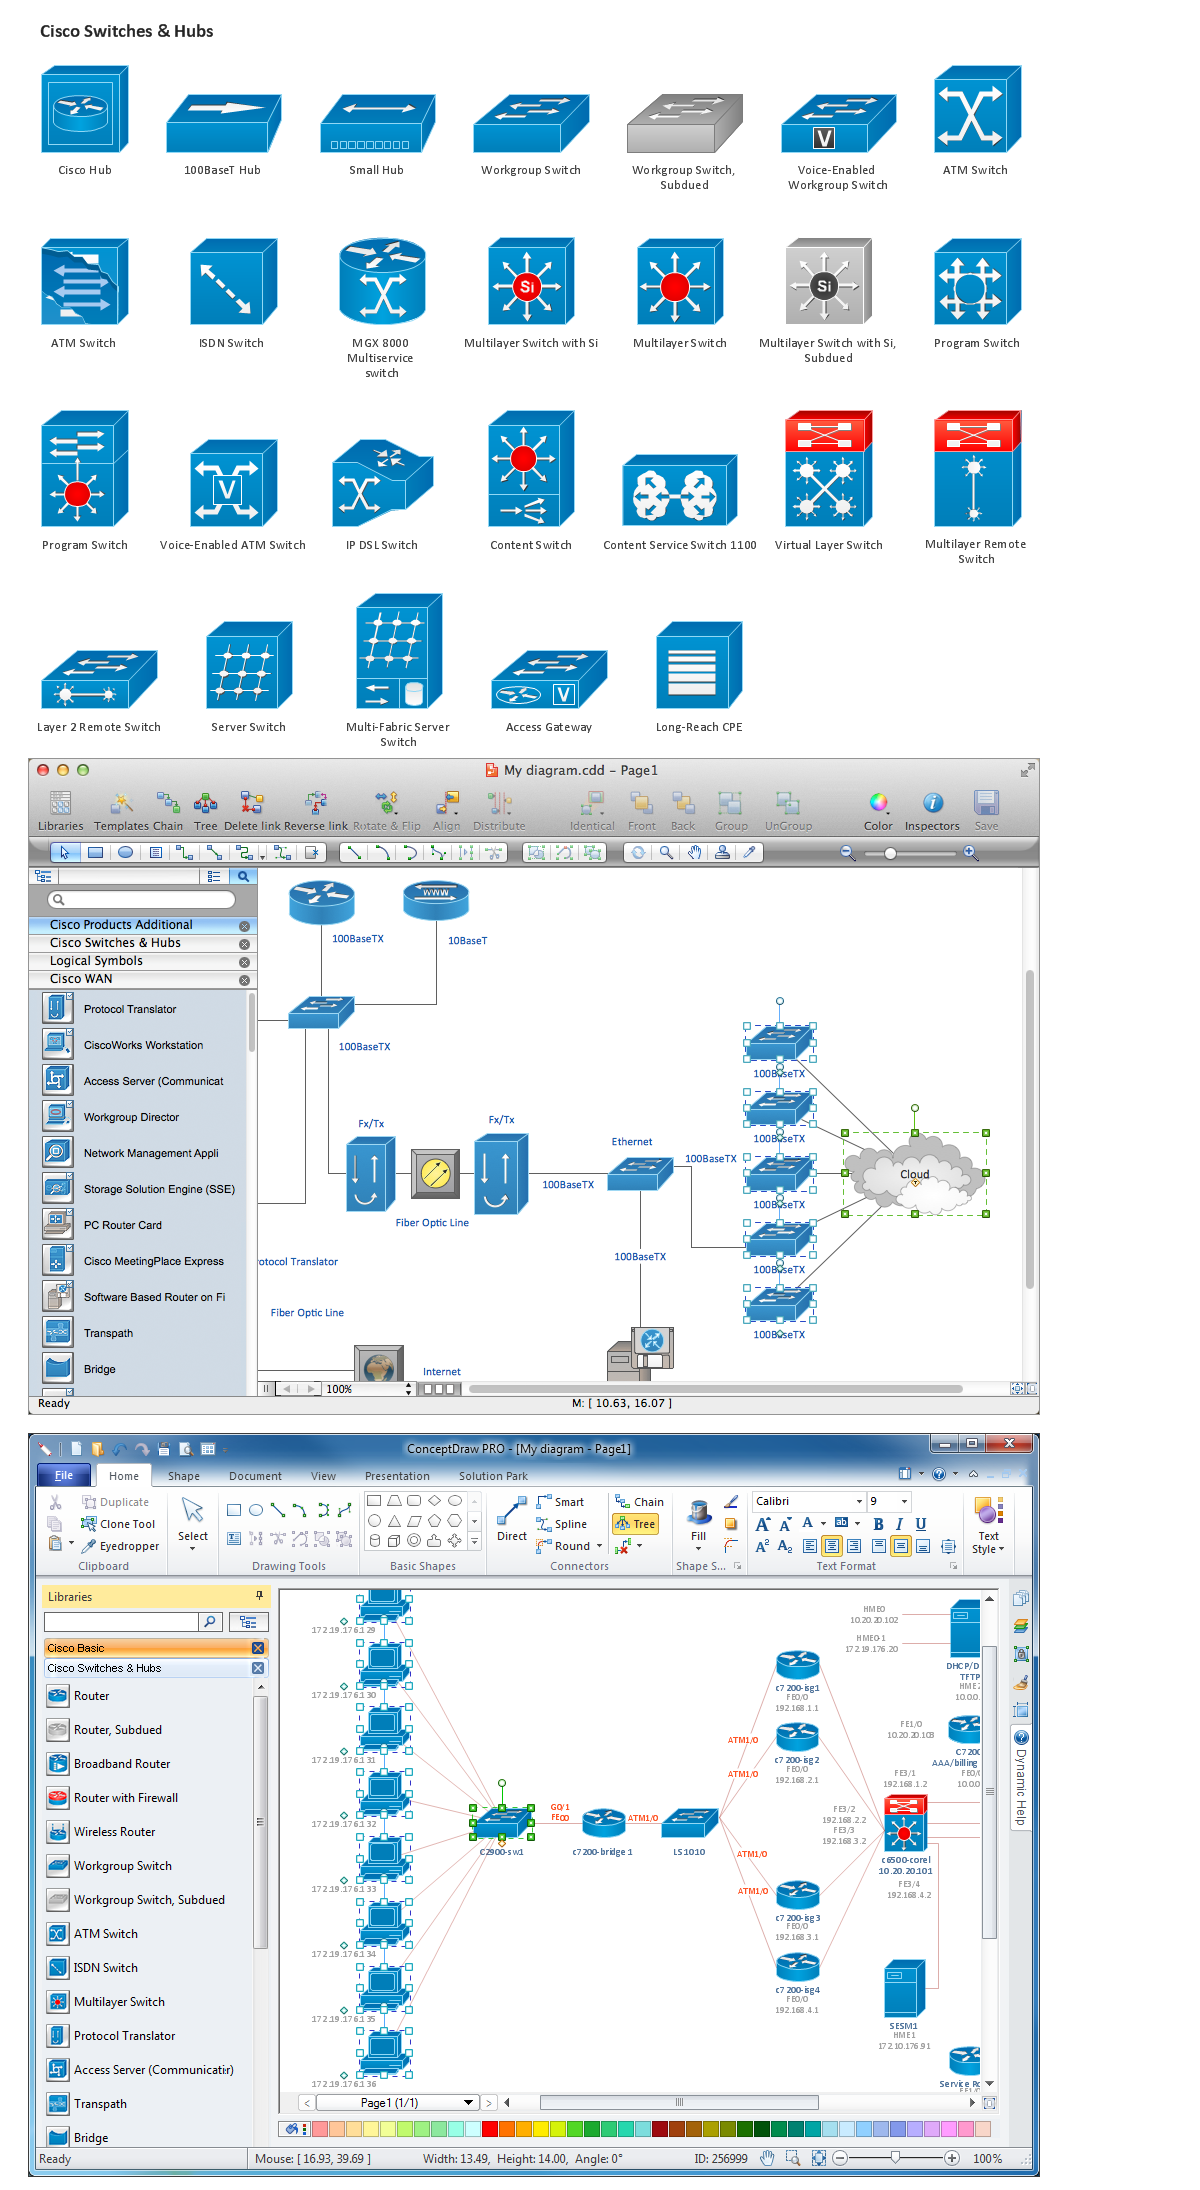 Network diagramming tools design element cisco professional network diagramming software for design cisco network diagrams asfbconference2016 Images